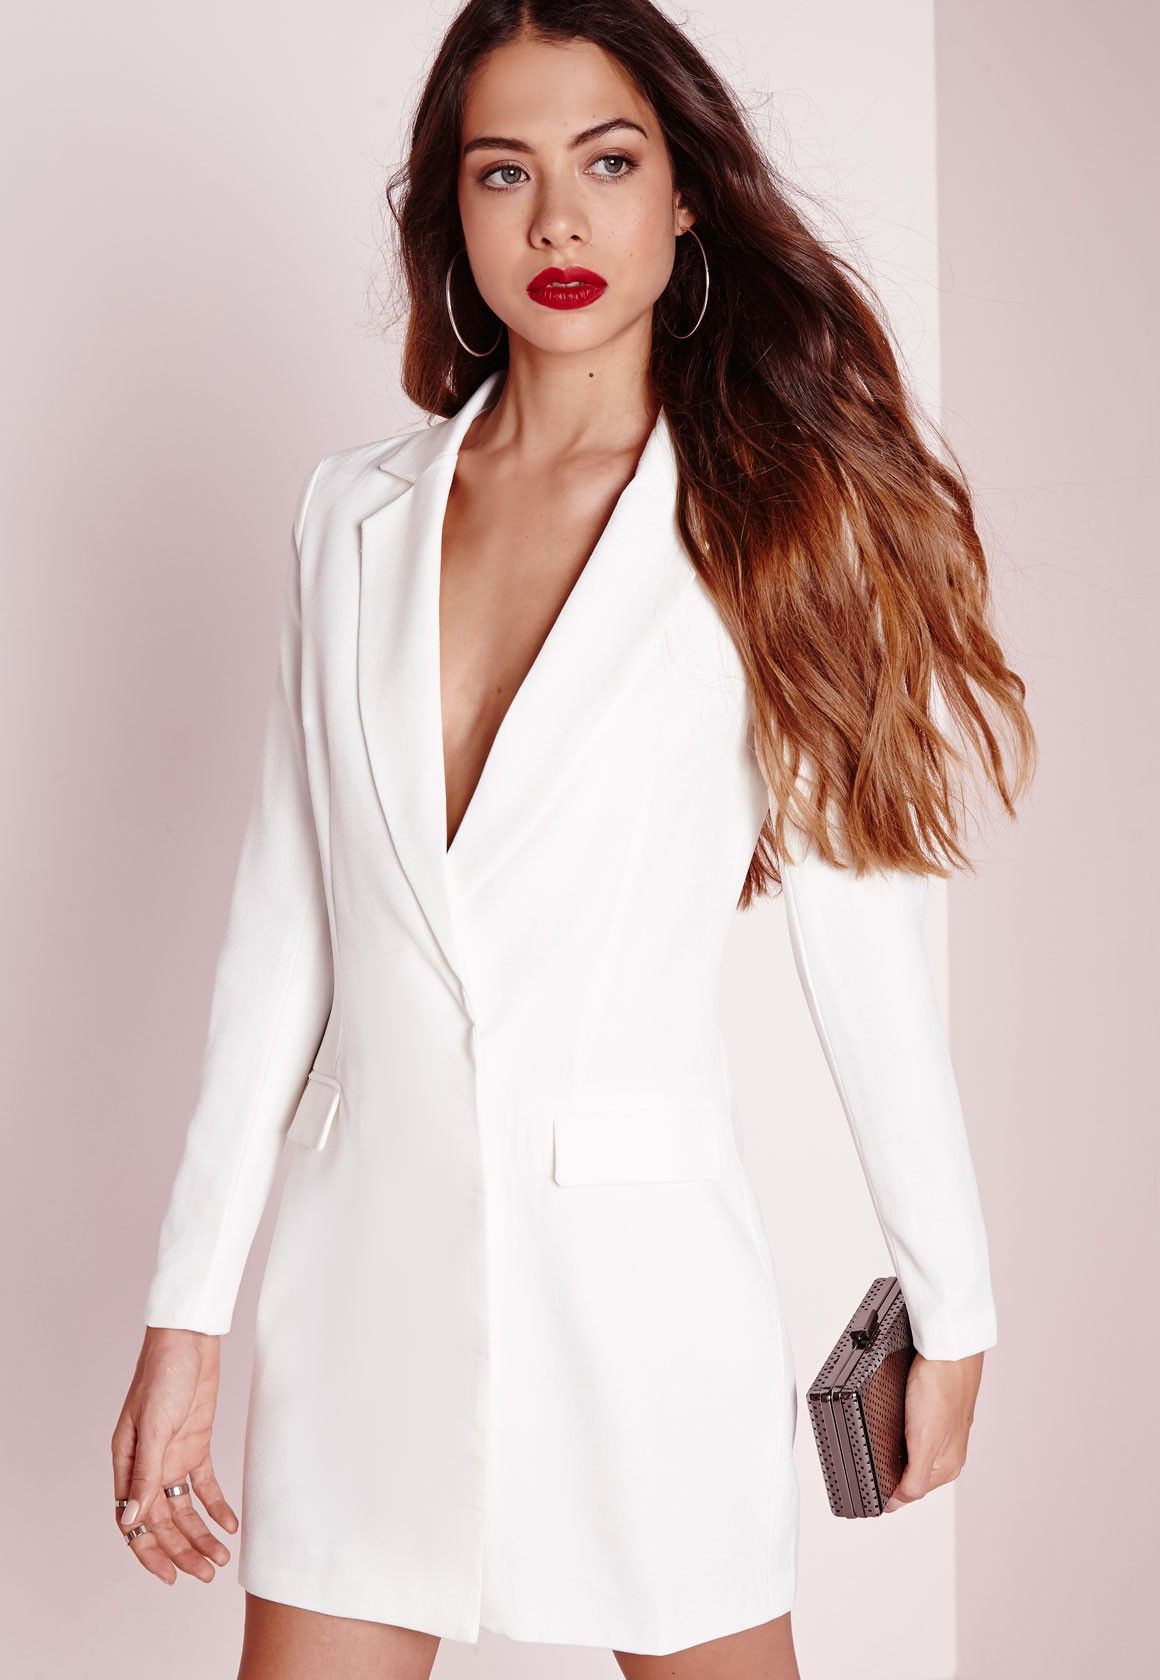 58ef5d3d35aa Missguided - Tall Long Sleeve Blazer Dress White | MINIMALIST ...